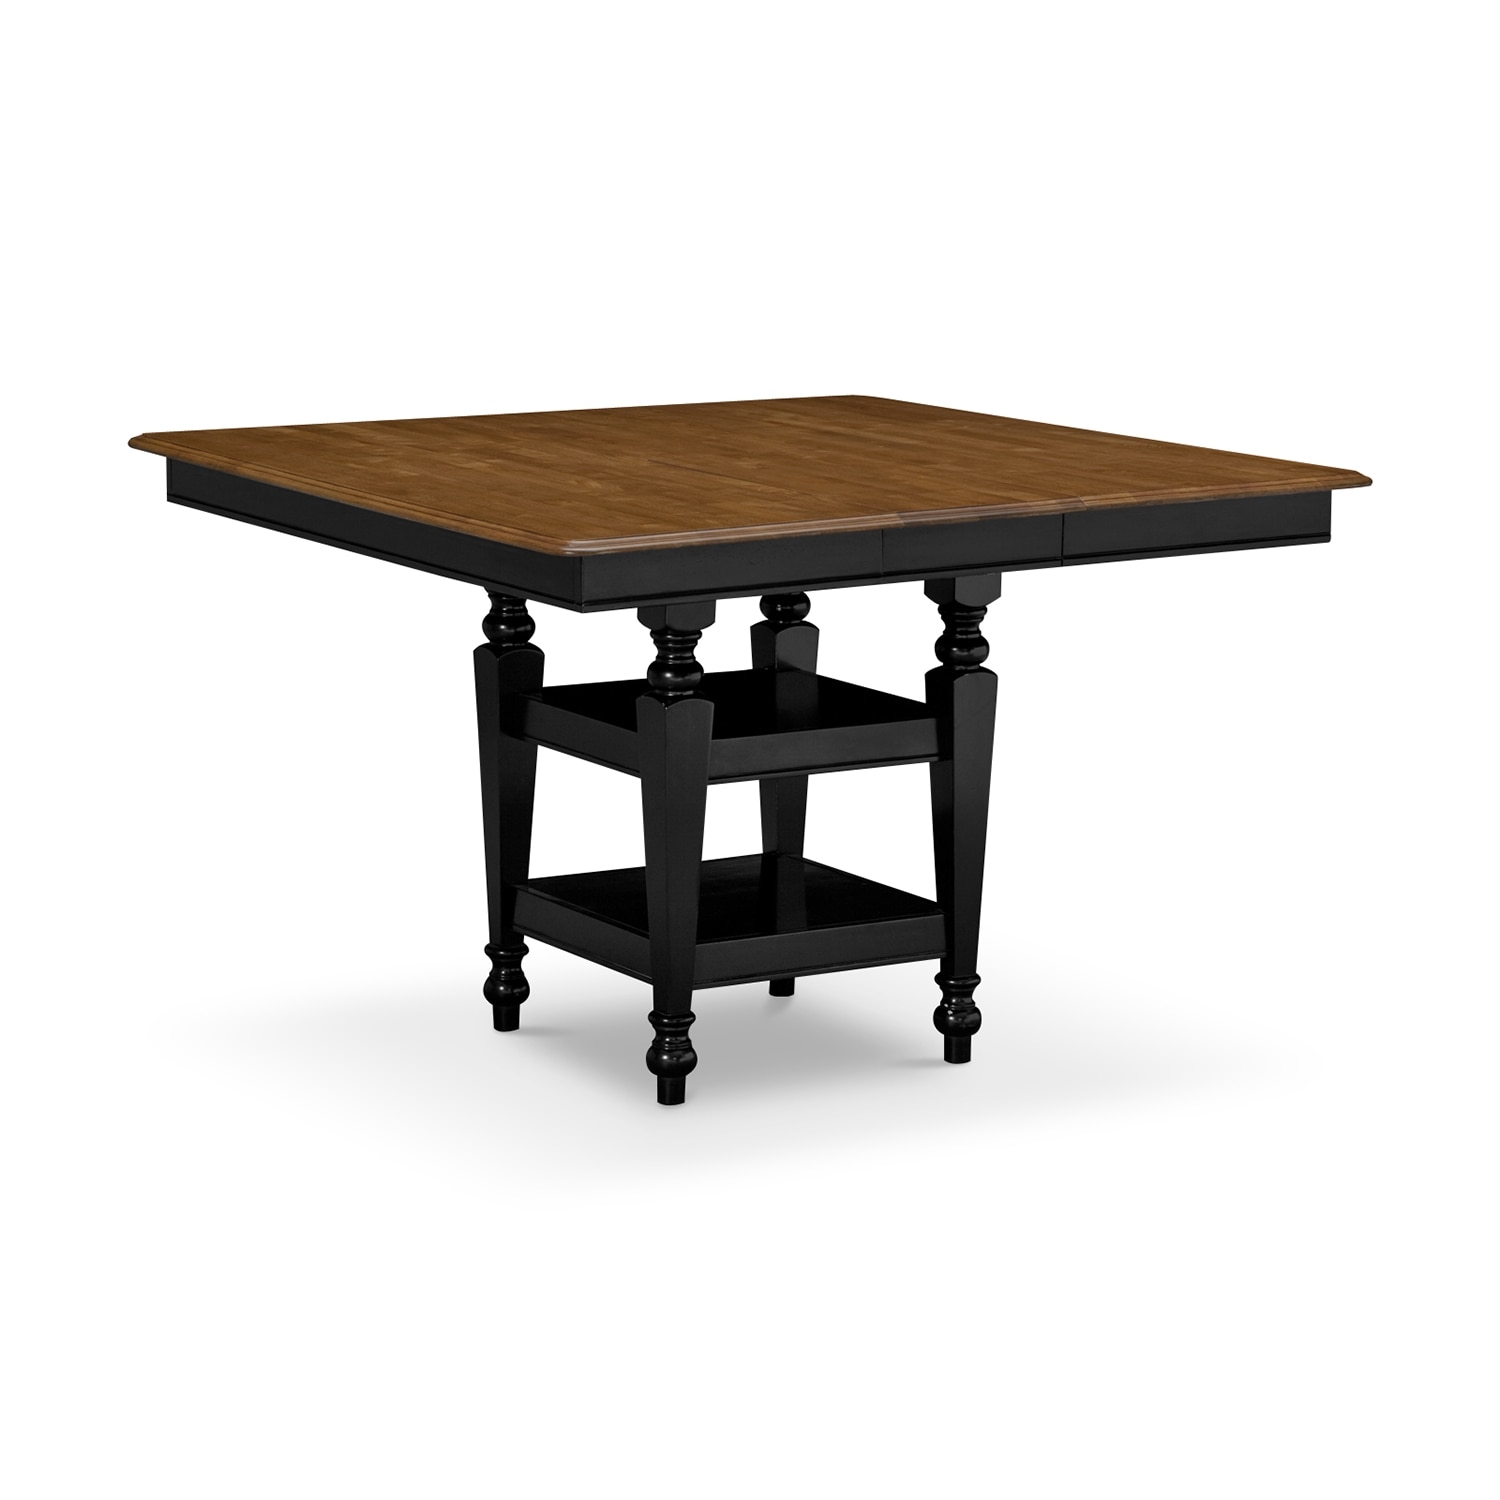 ... Signature Furniture - Chesapeake Dining Room Counter-Height Table